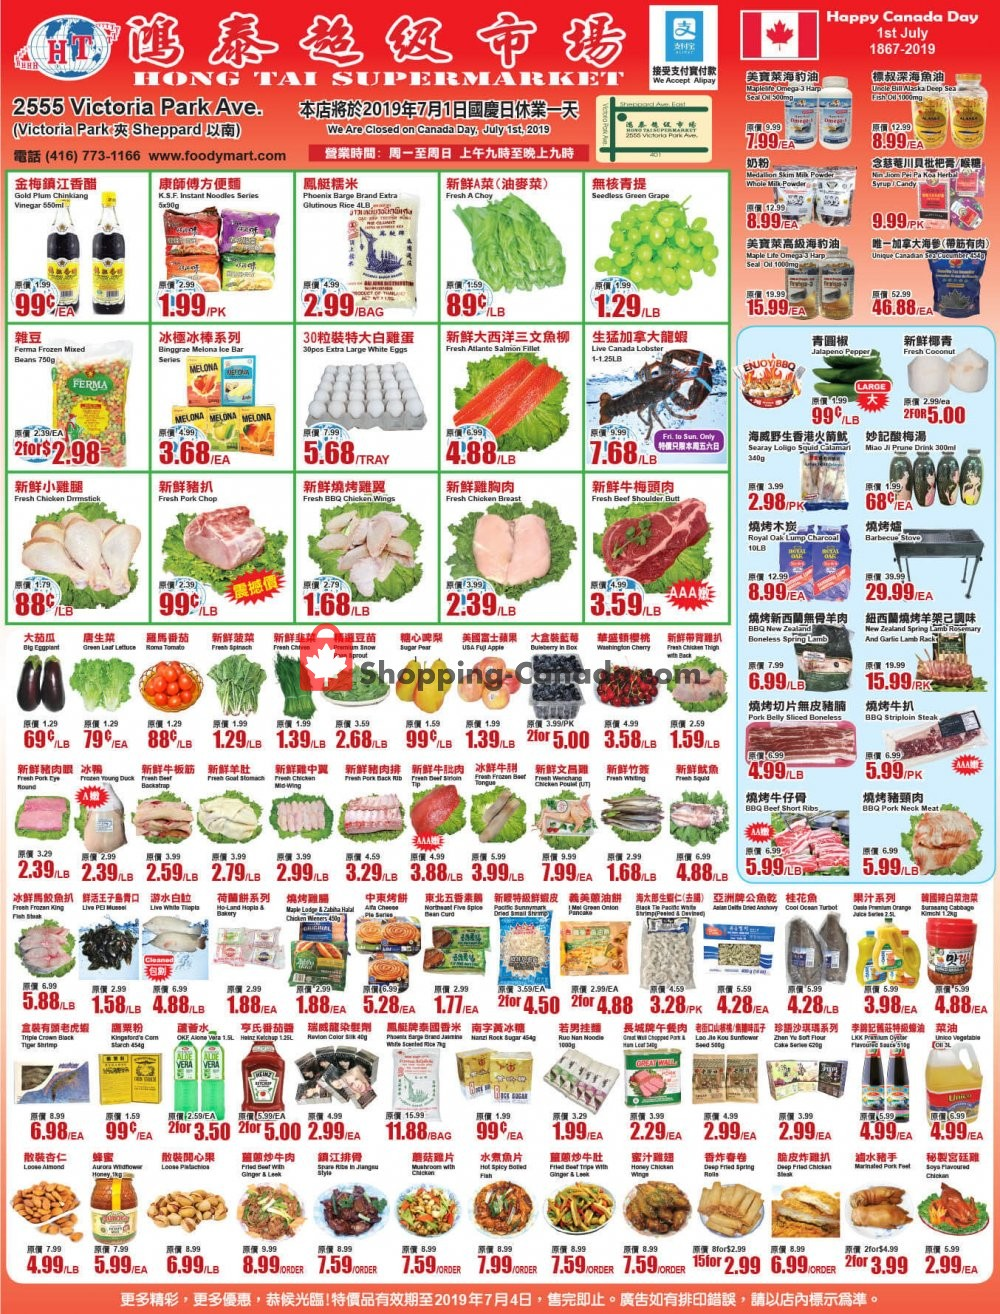 Flyer Foodymart Canada - from Friday June 28, 2019 to Thursday July 4, 2019